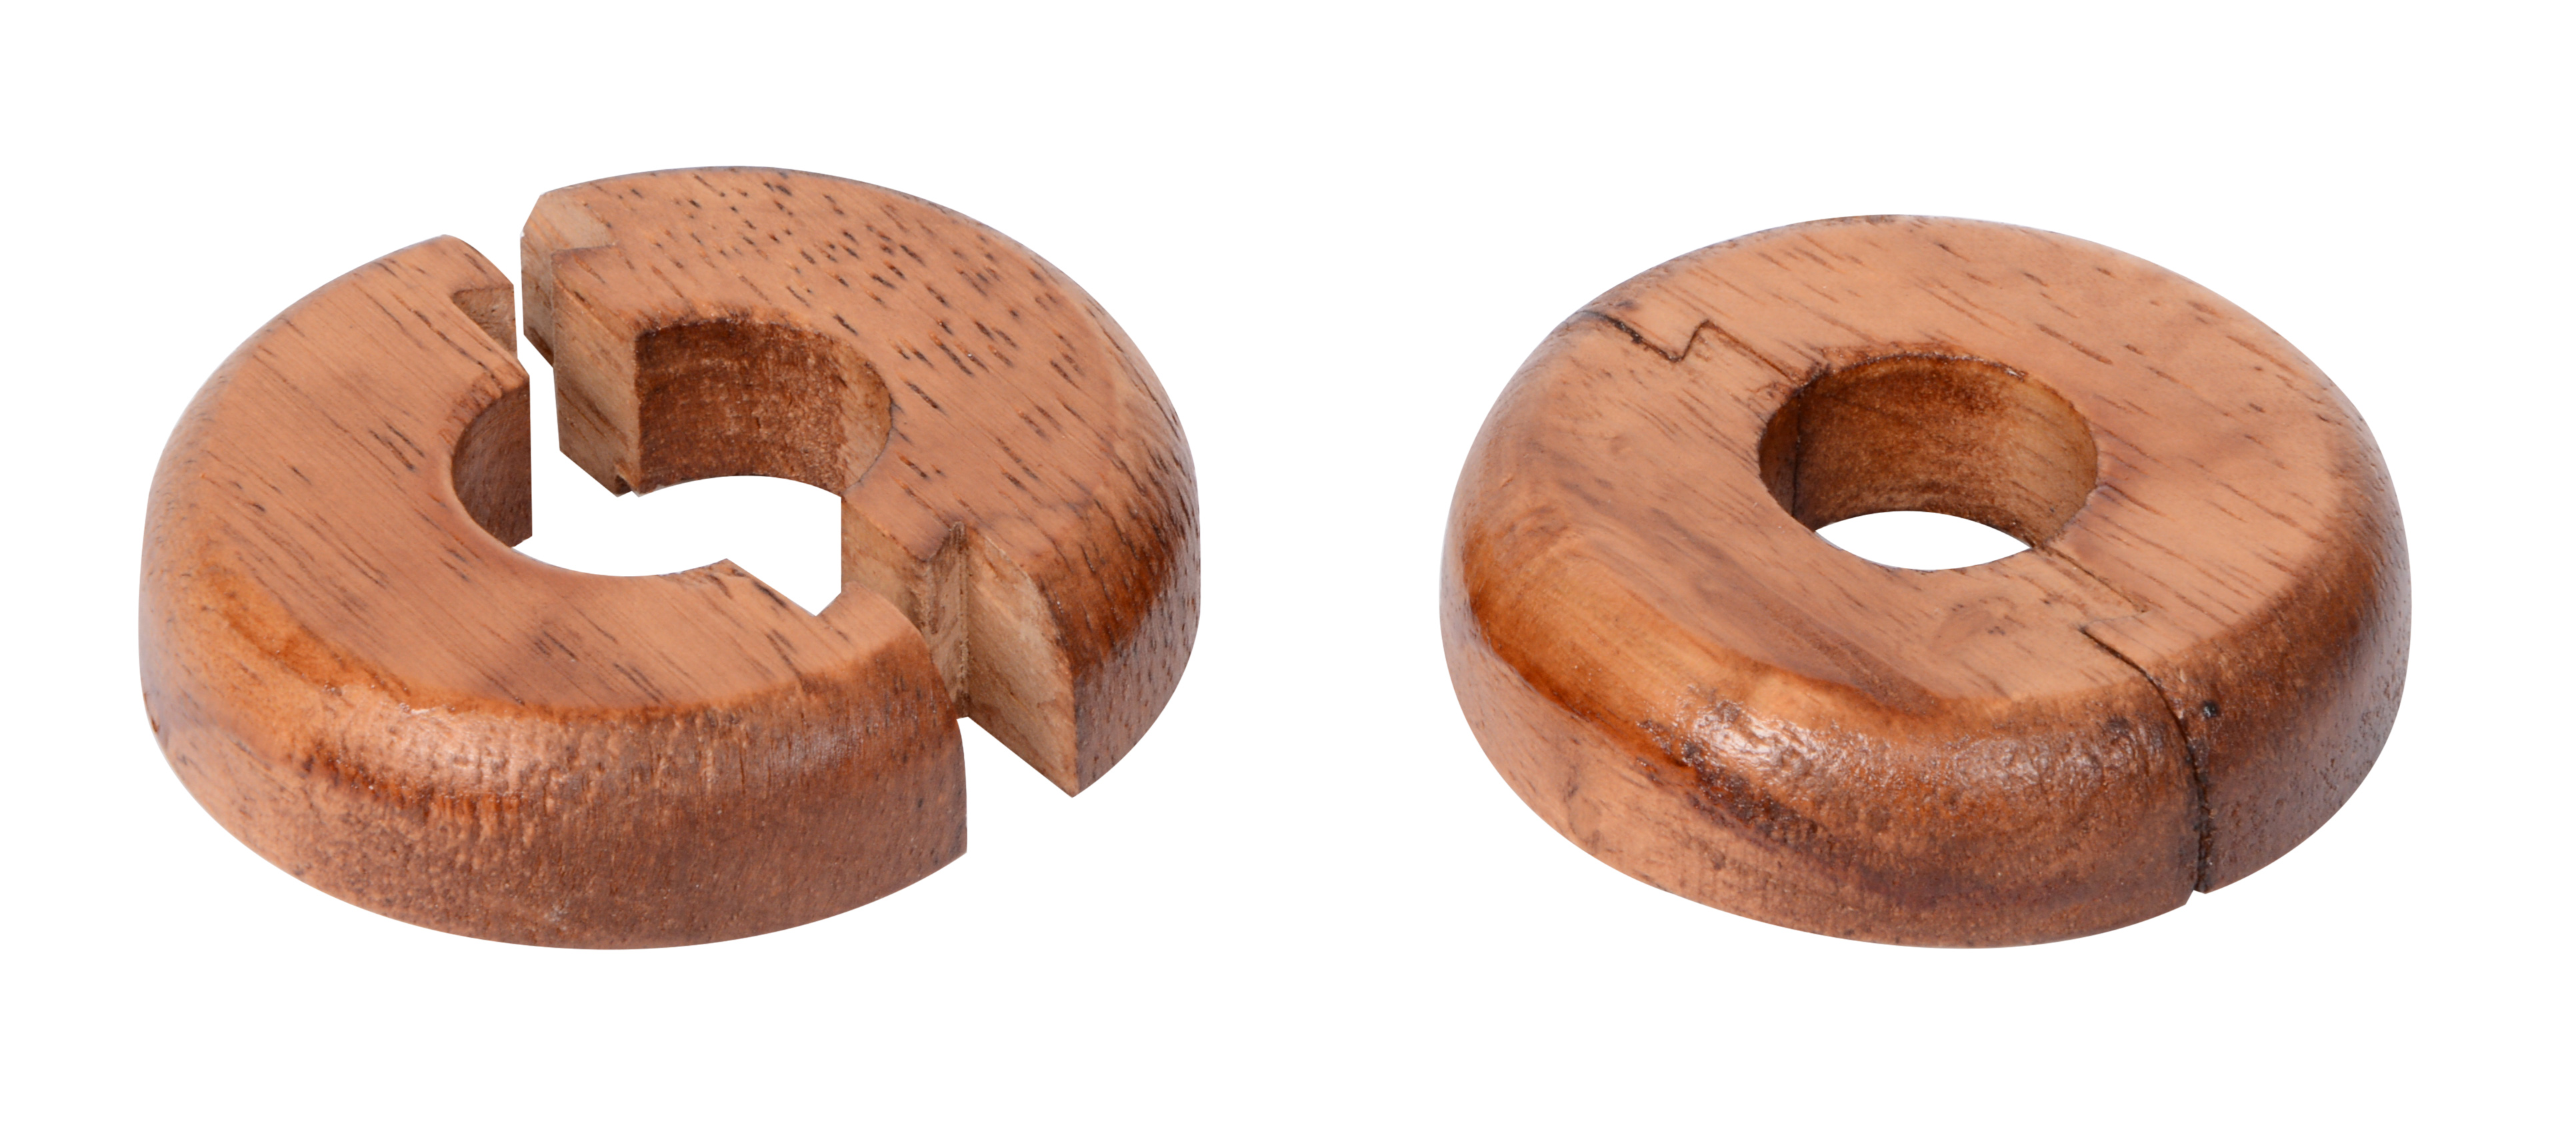 Real Wood Pipe Surrounds - Medium Wood